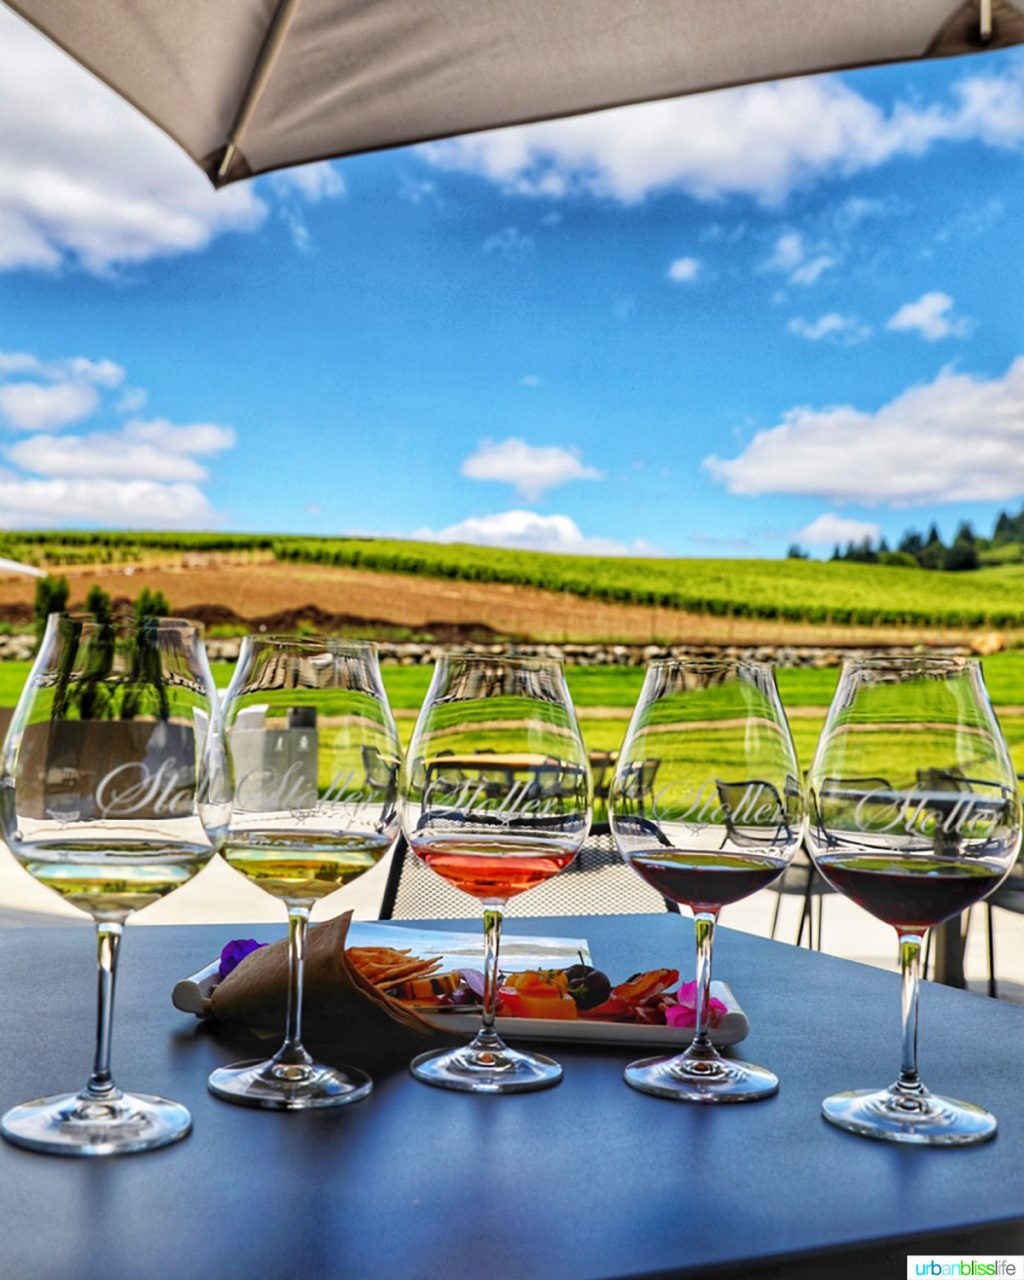 wine flight against a backdrop of vineyards at Stoller